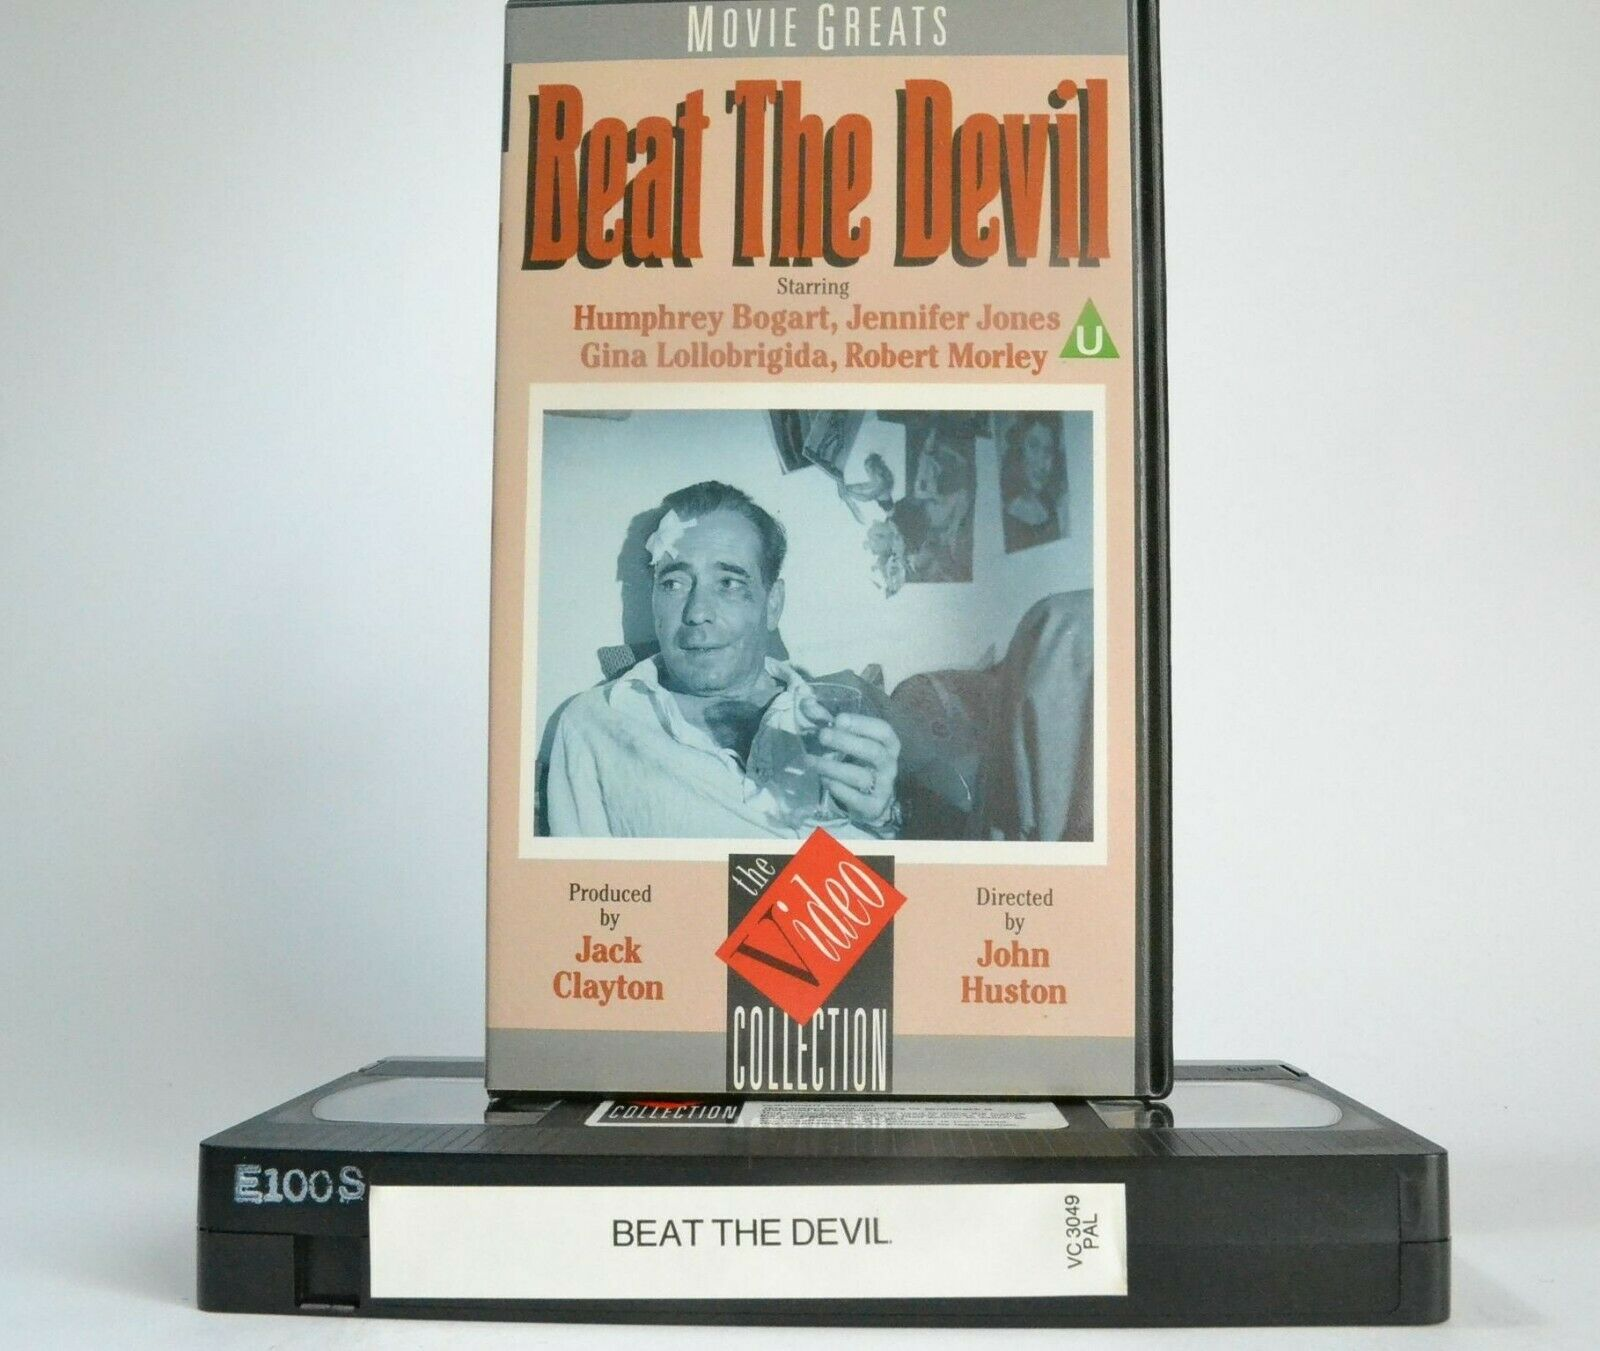 1963, Action, Action & Adventure, Adventure, Beat, Bogart, Devil, Humphrey, Humphrey Bogart, Jennifer, Jones, PAL, The, VHS